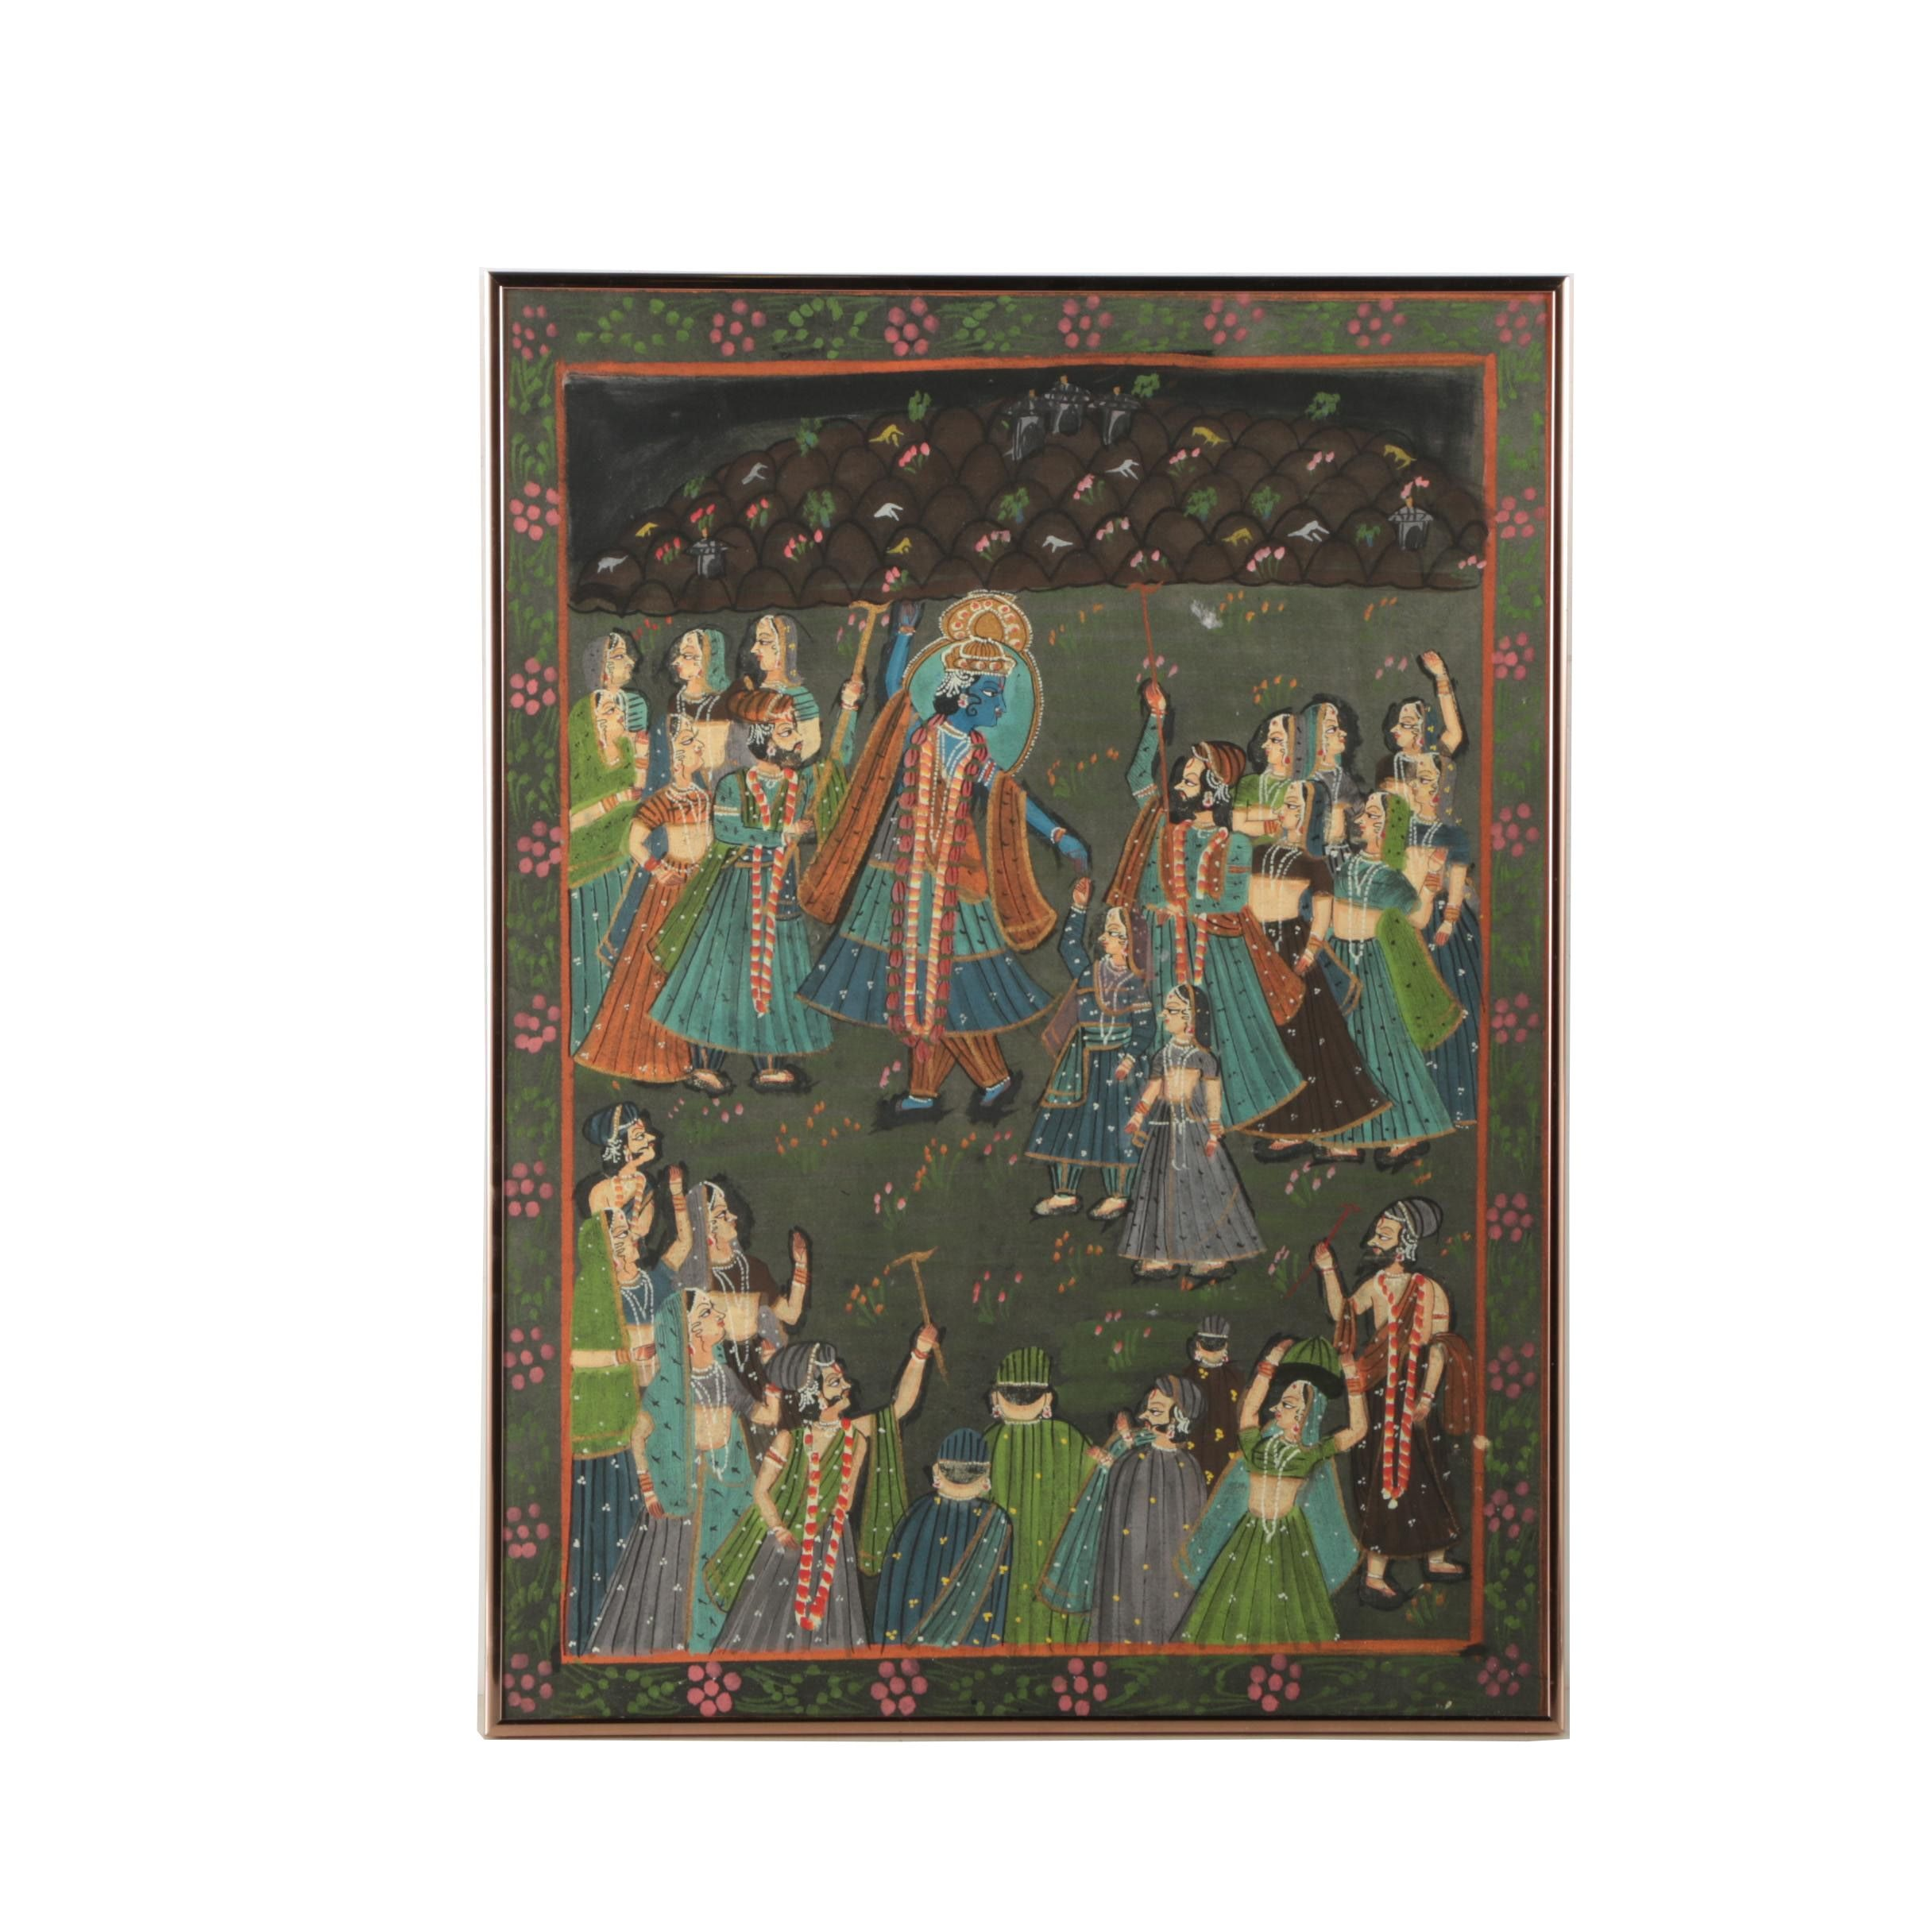 Indian Gouache and Ink Painting on Fabric of Krishna Surrounded by Figures